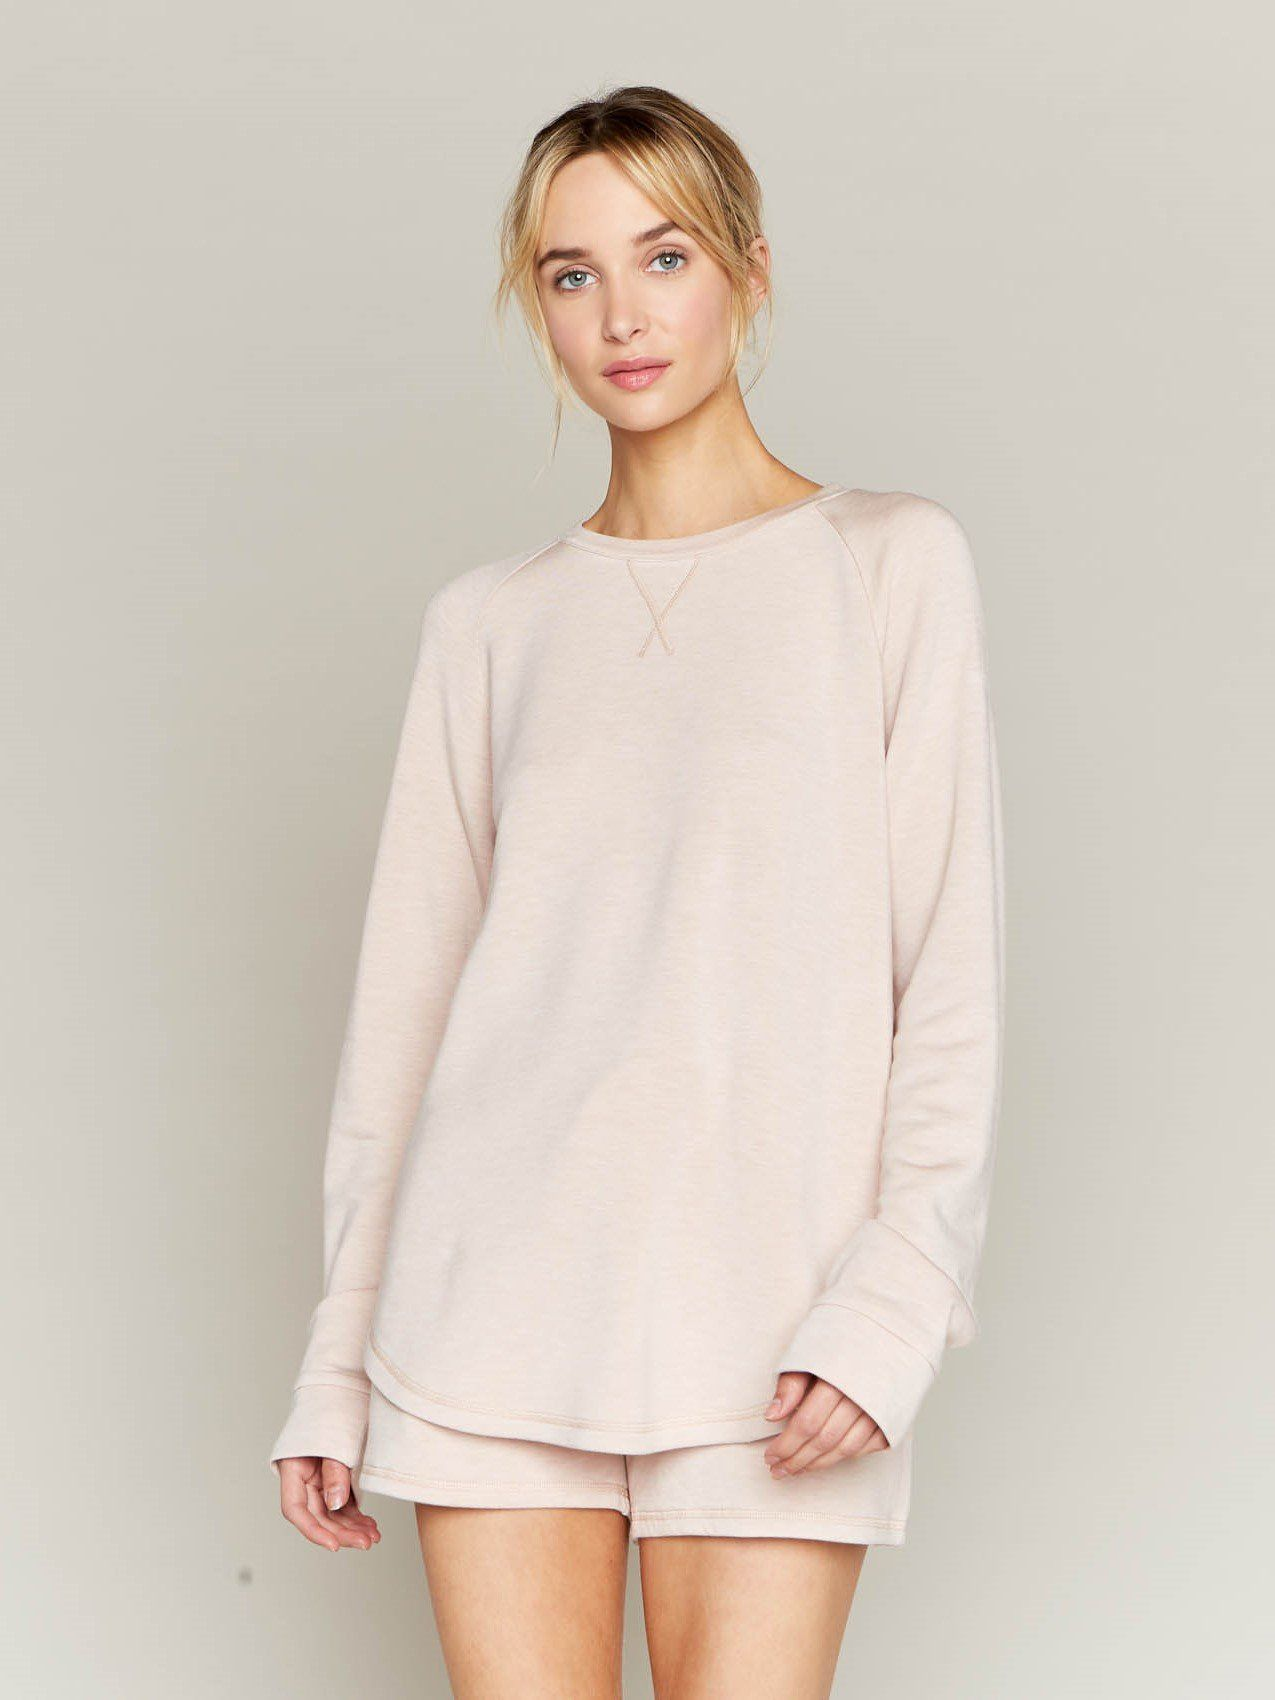 Feel at Home Sweatshirt Unclassified Thread&Supply Oatmeal S